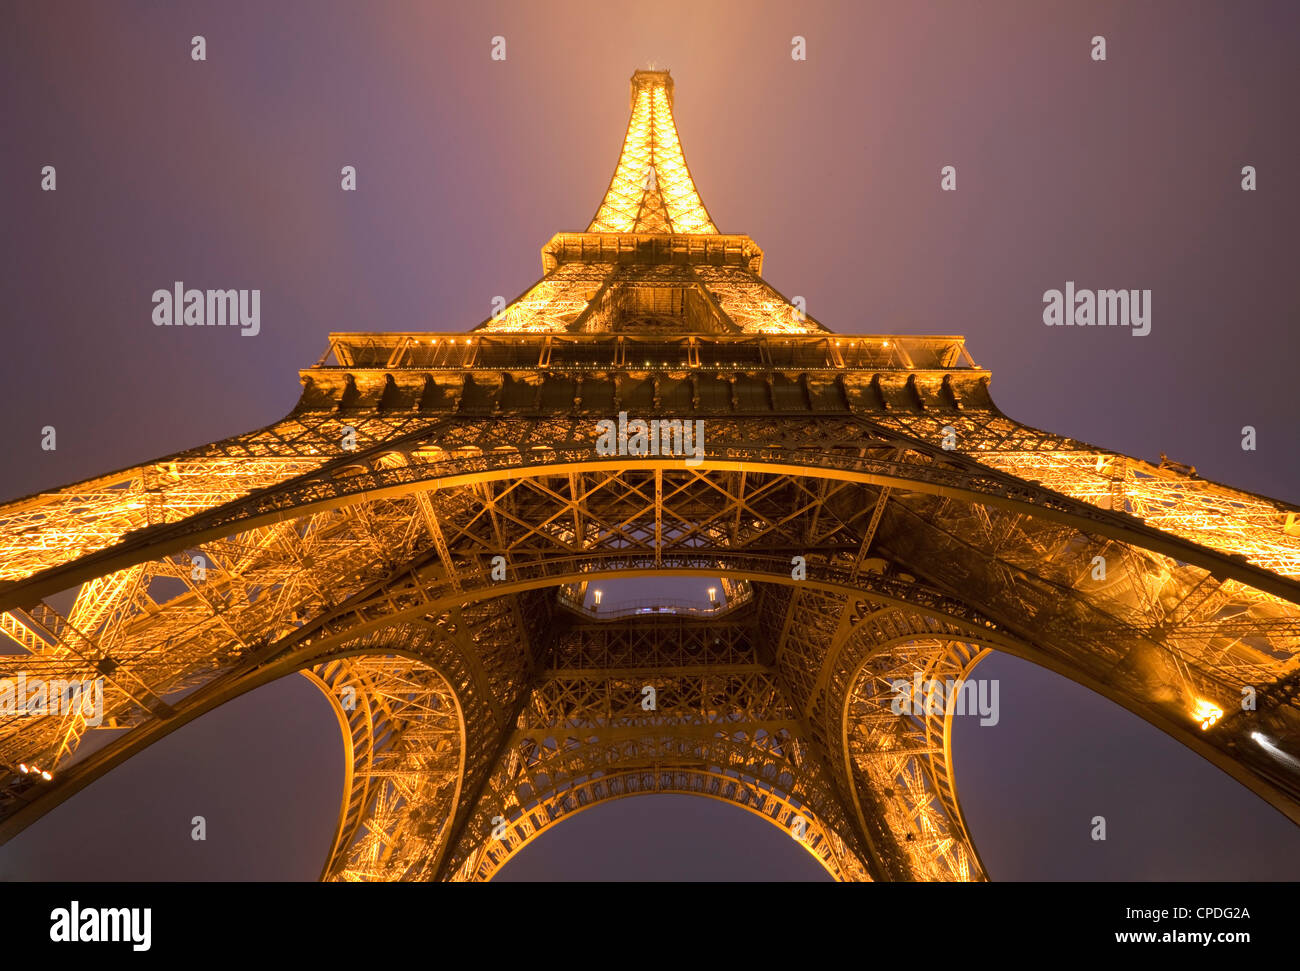 Large vue de la tour Eiffel la nuit, Paris, France, Europe Photo Stock